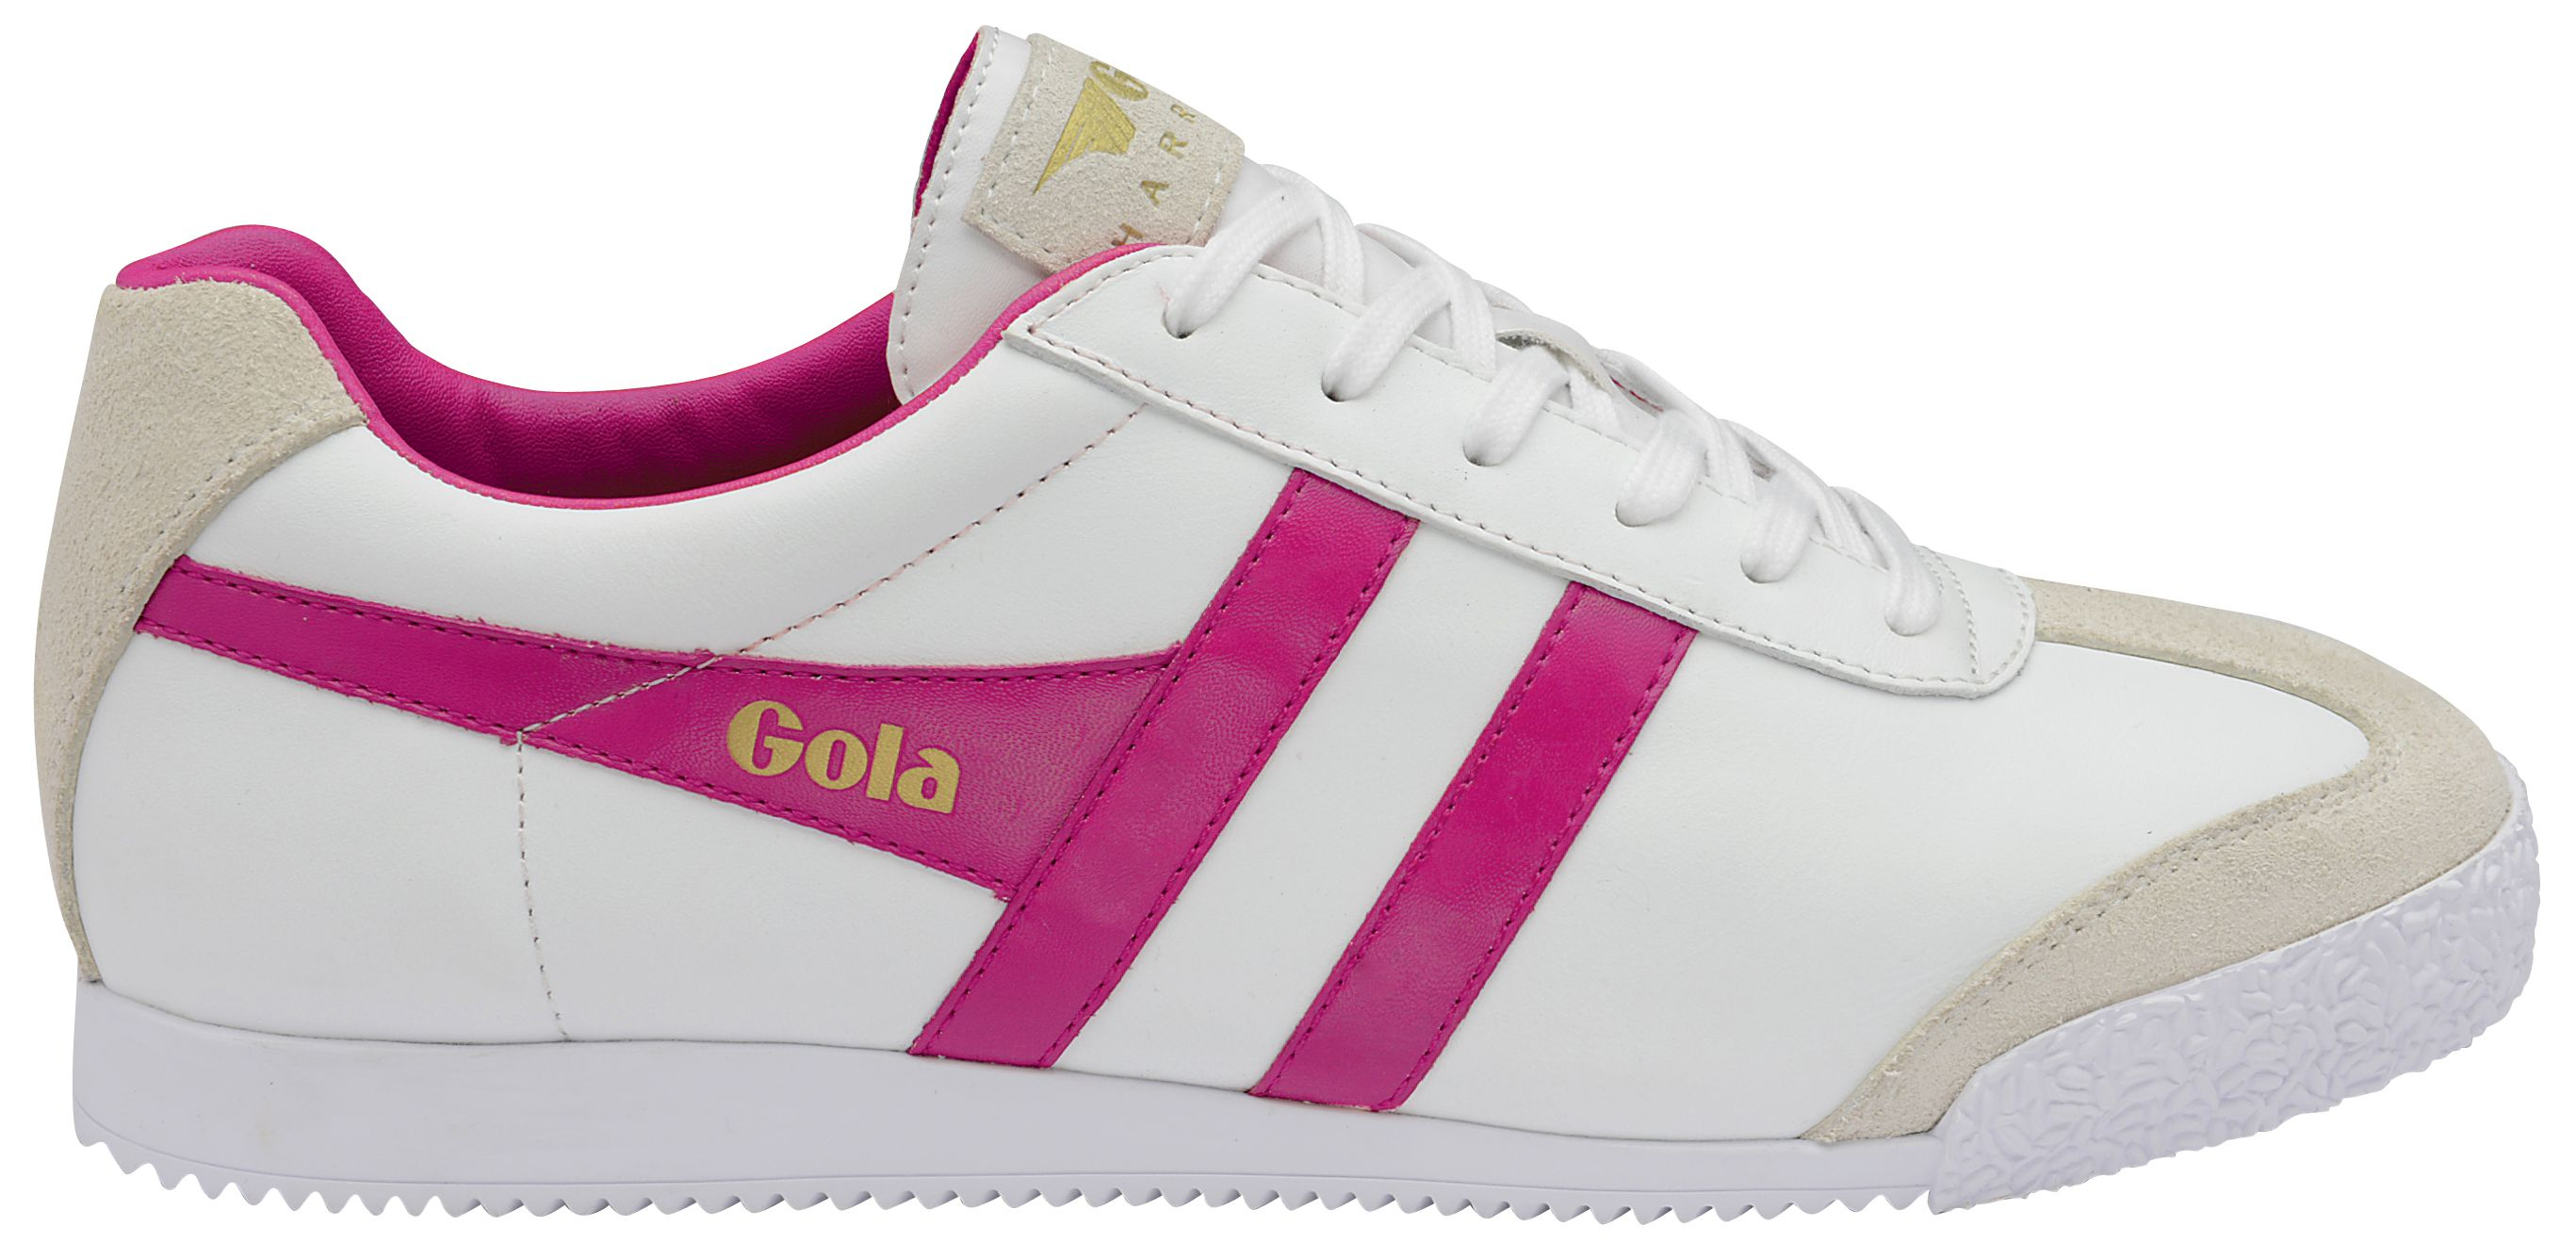 Gola Gola Harrier leather lace up trainers, Multi-Coloured